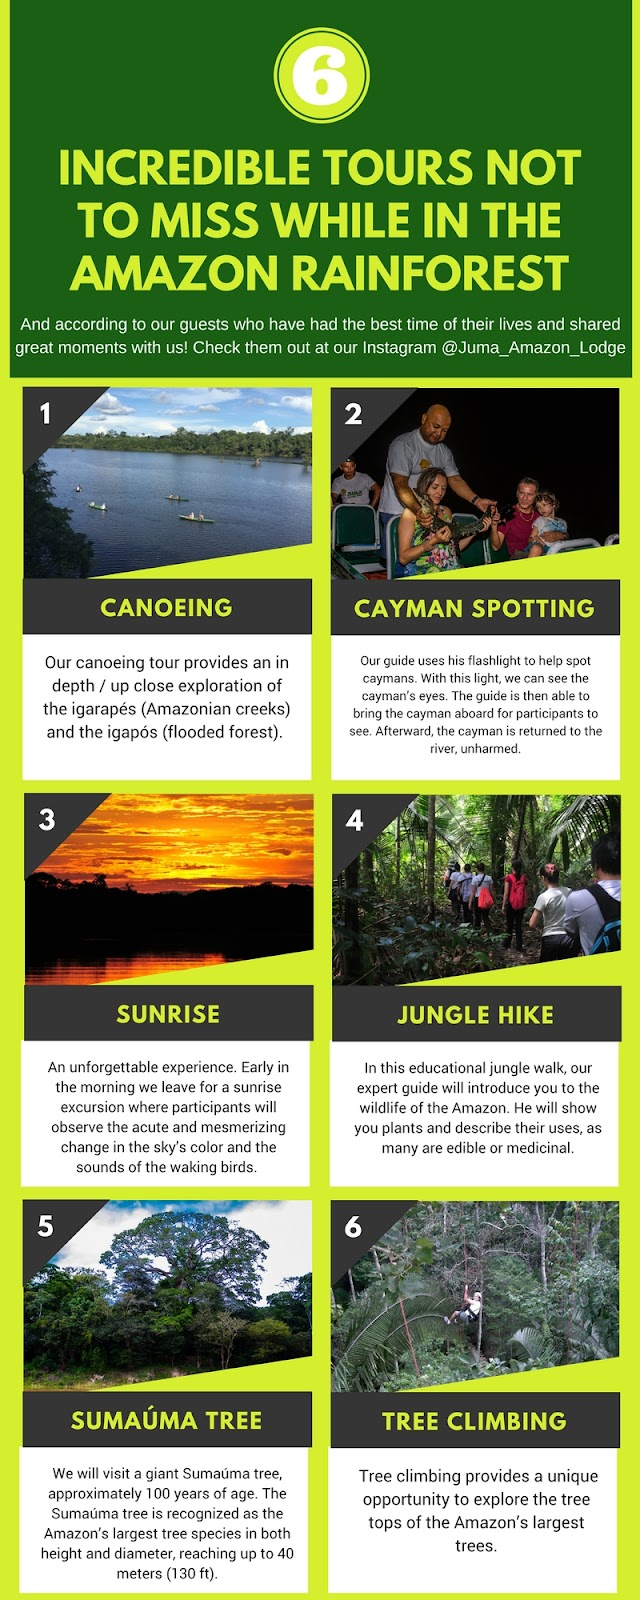 6 incredible tours not to miss while in the Amazon Rainforest